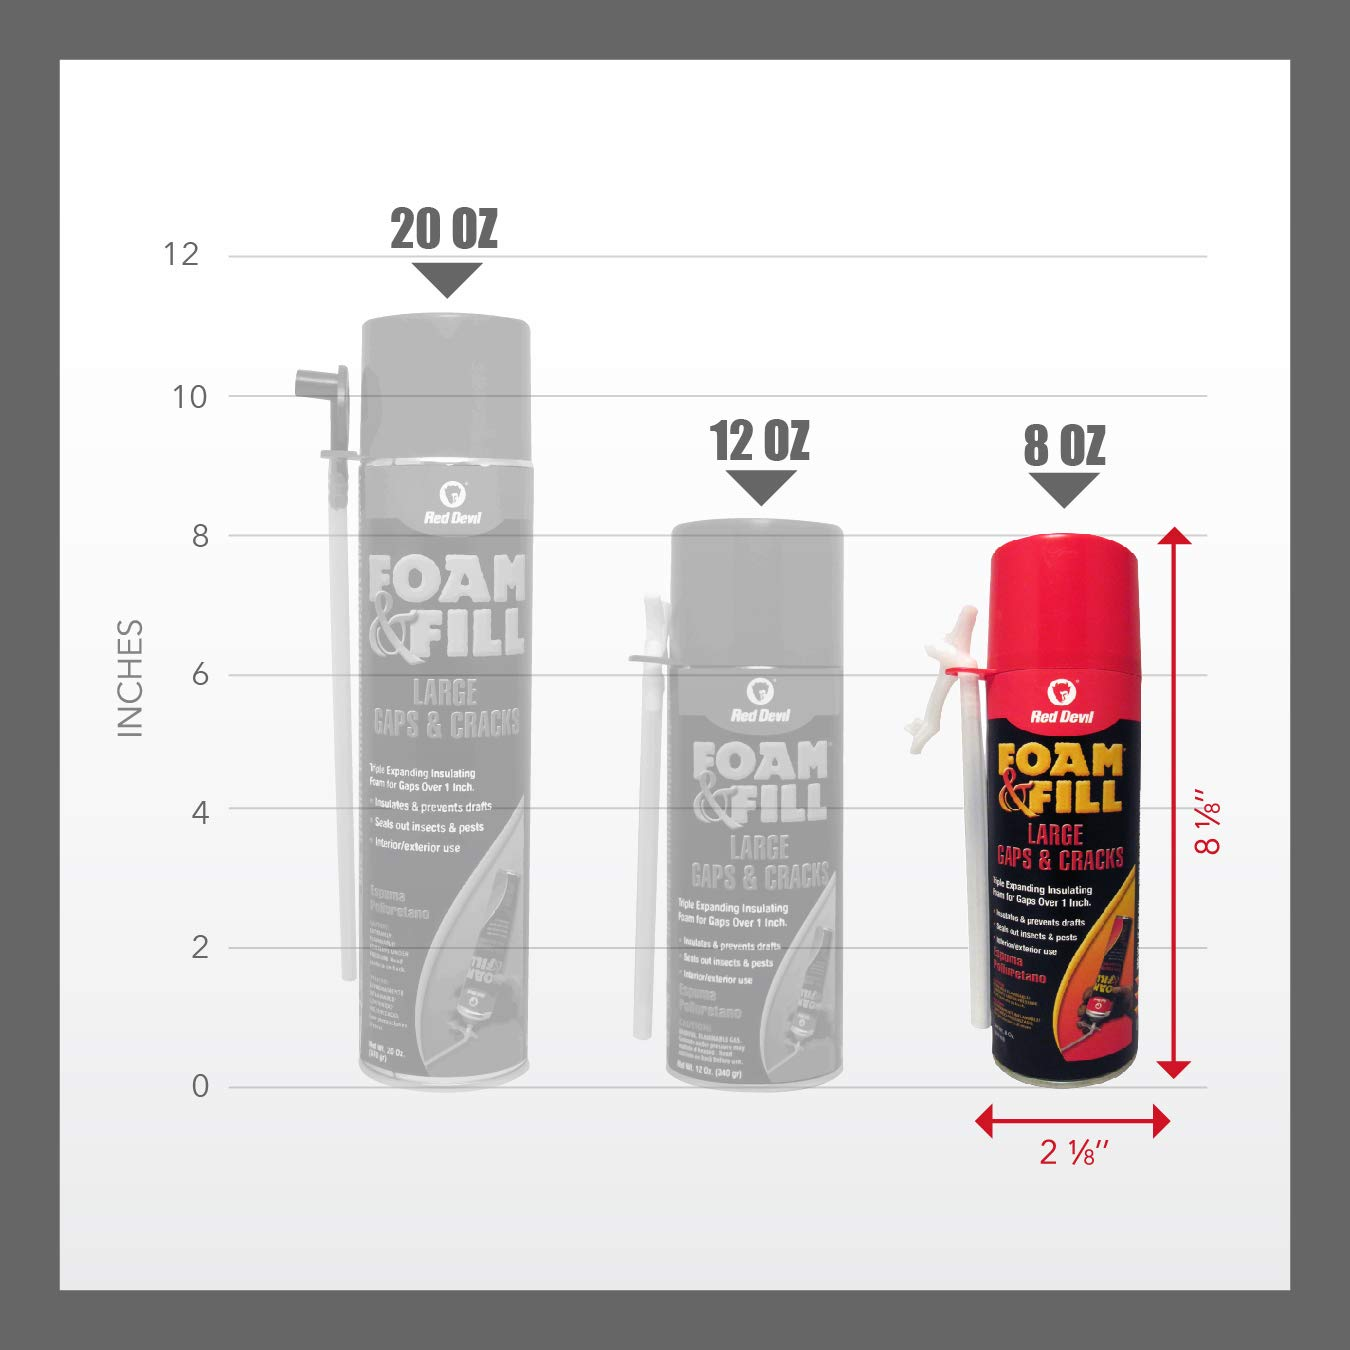 Red Devil 0908 Foam & Fill Large Gaps & Cracks Polyurethane Foam Sealant 8 oz Off White - - Amazon.com